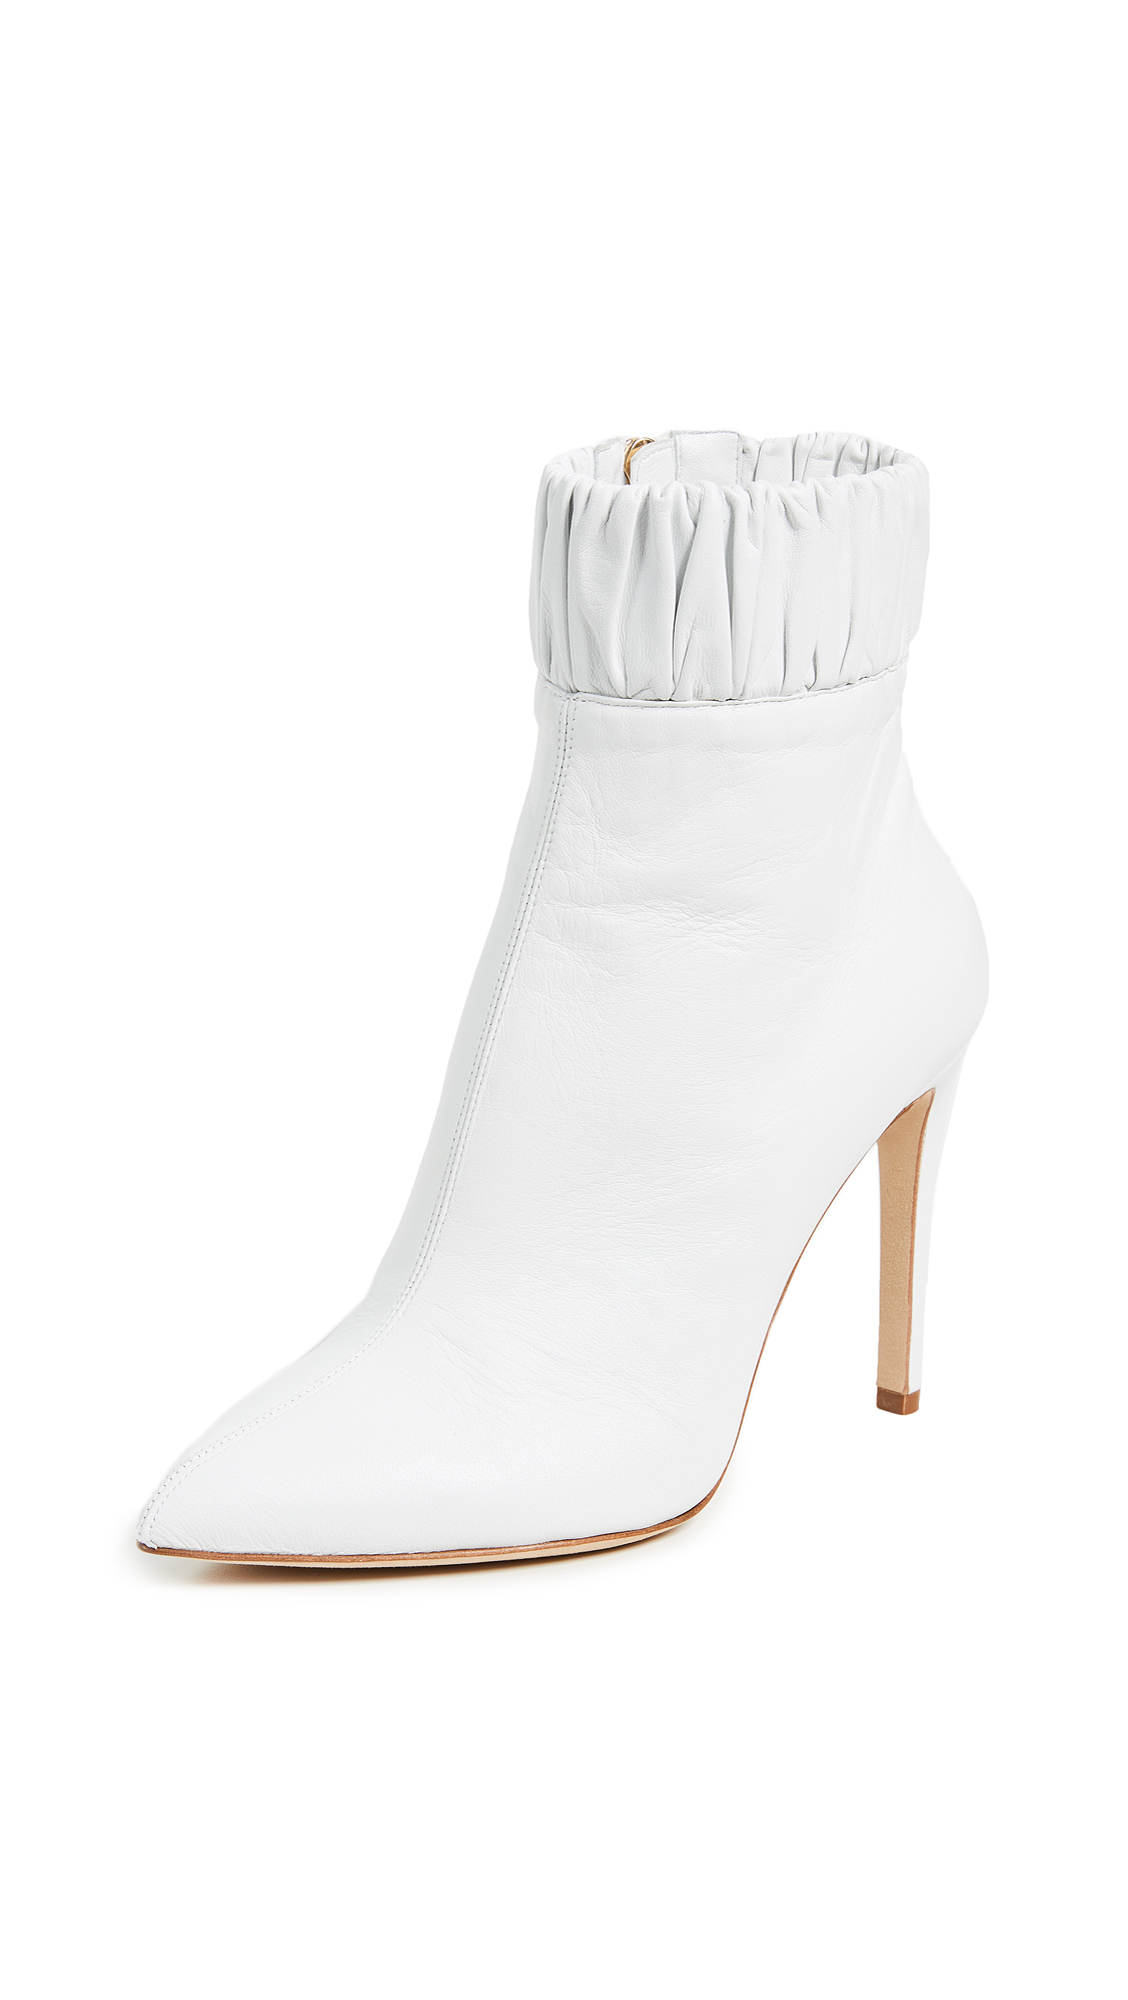 Photo of Chloe Gosselin Maud Booties - buy Chloe Gosselin shoes